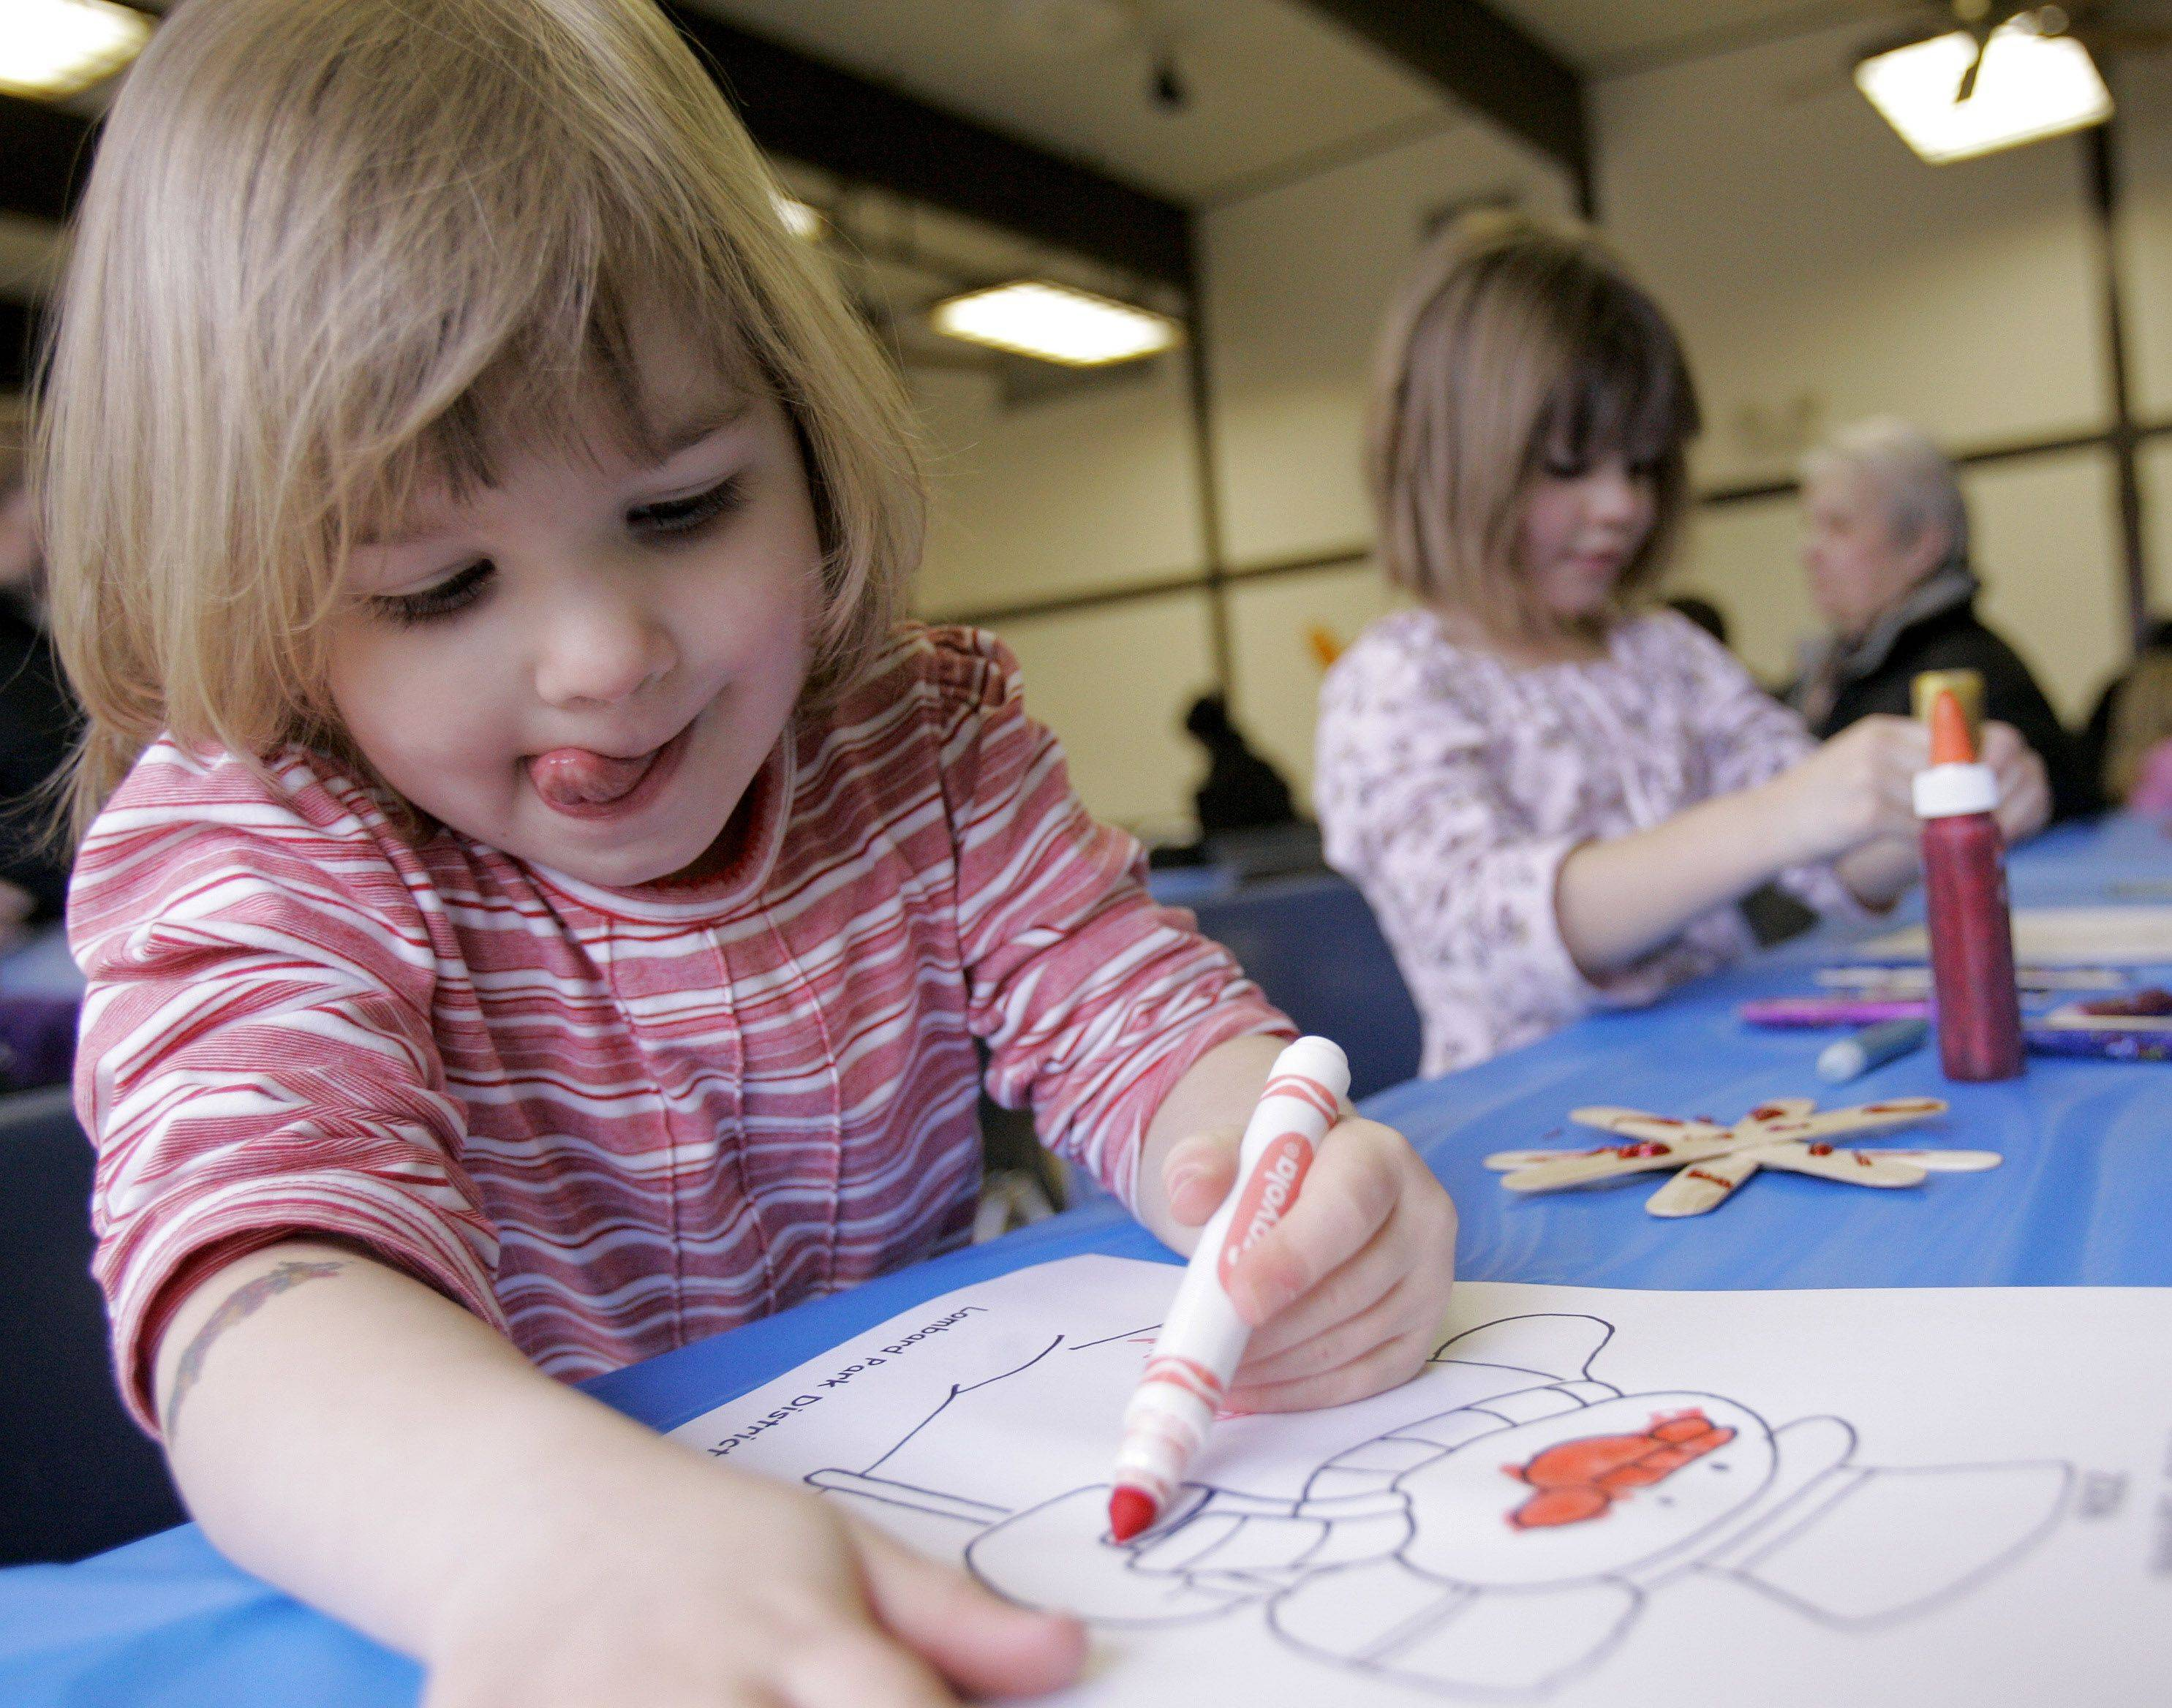 Lombard's Winter Carnival includes indoor fun like coloring and crafts for those who want to warm up during the festival.